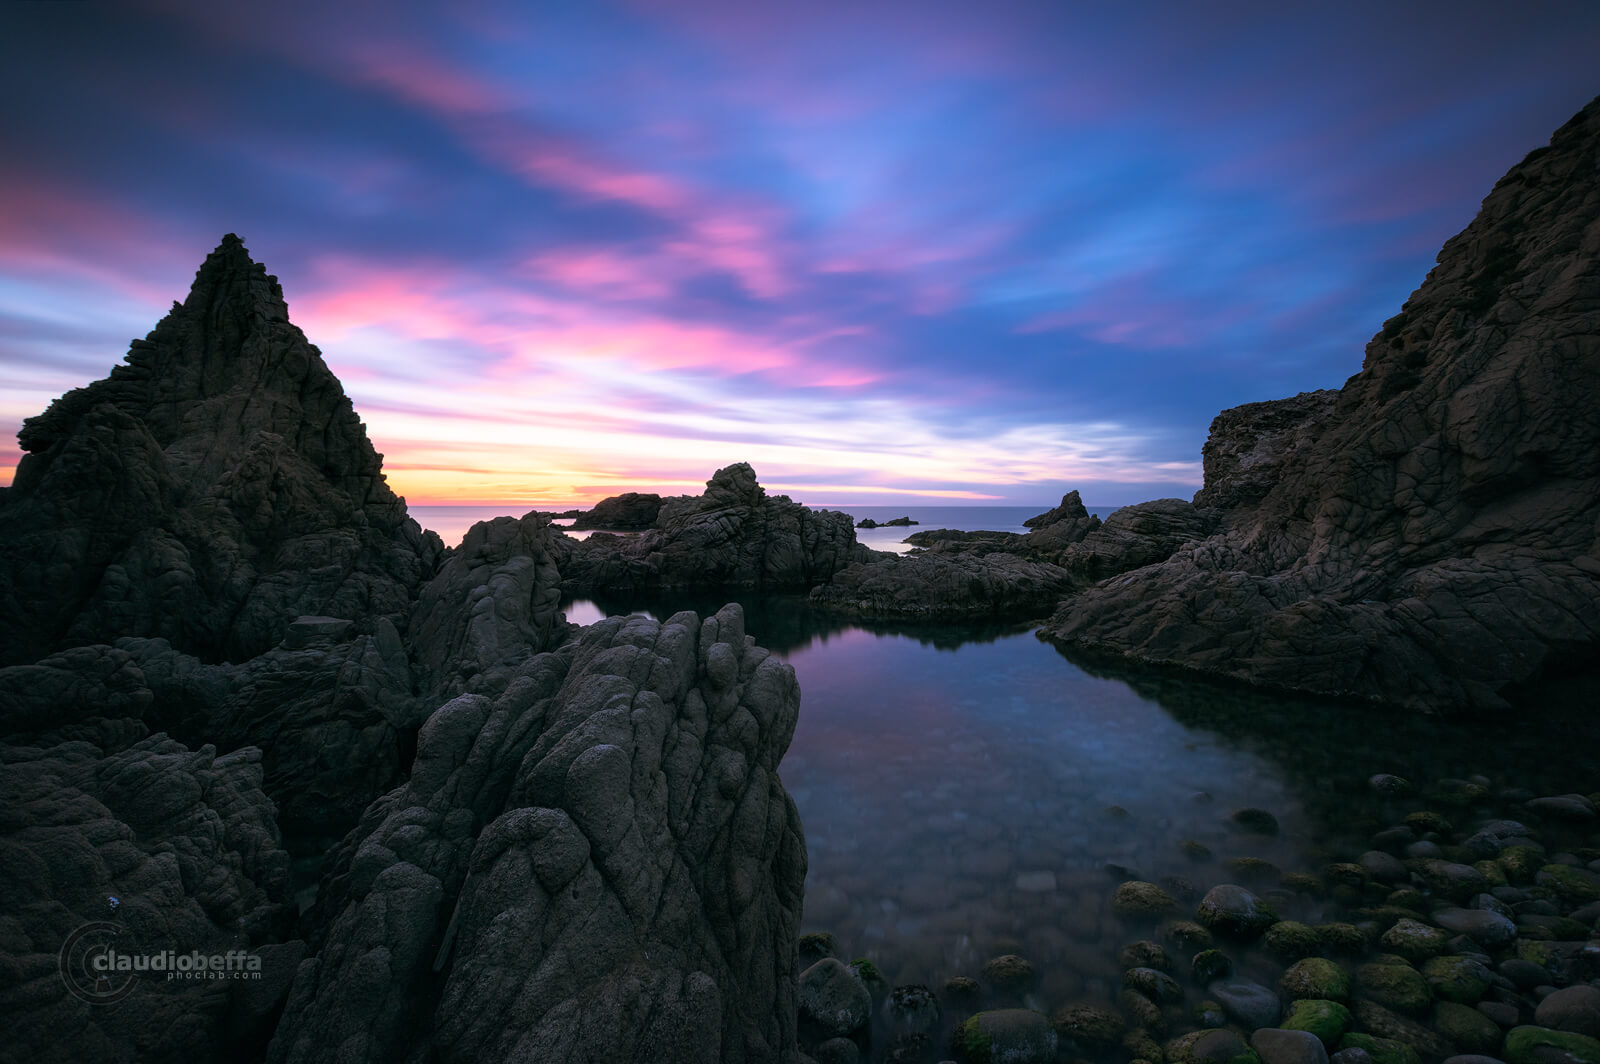 Capo Pecora, Sardinia, Italy, Sea, Seascape, Sunset, Blue hour, Cove, Shore, Pebbles, Rocks, Long exposure, Complementarity